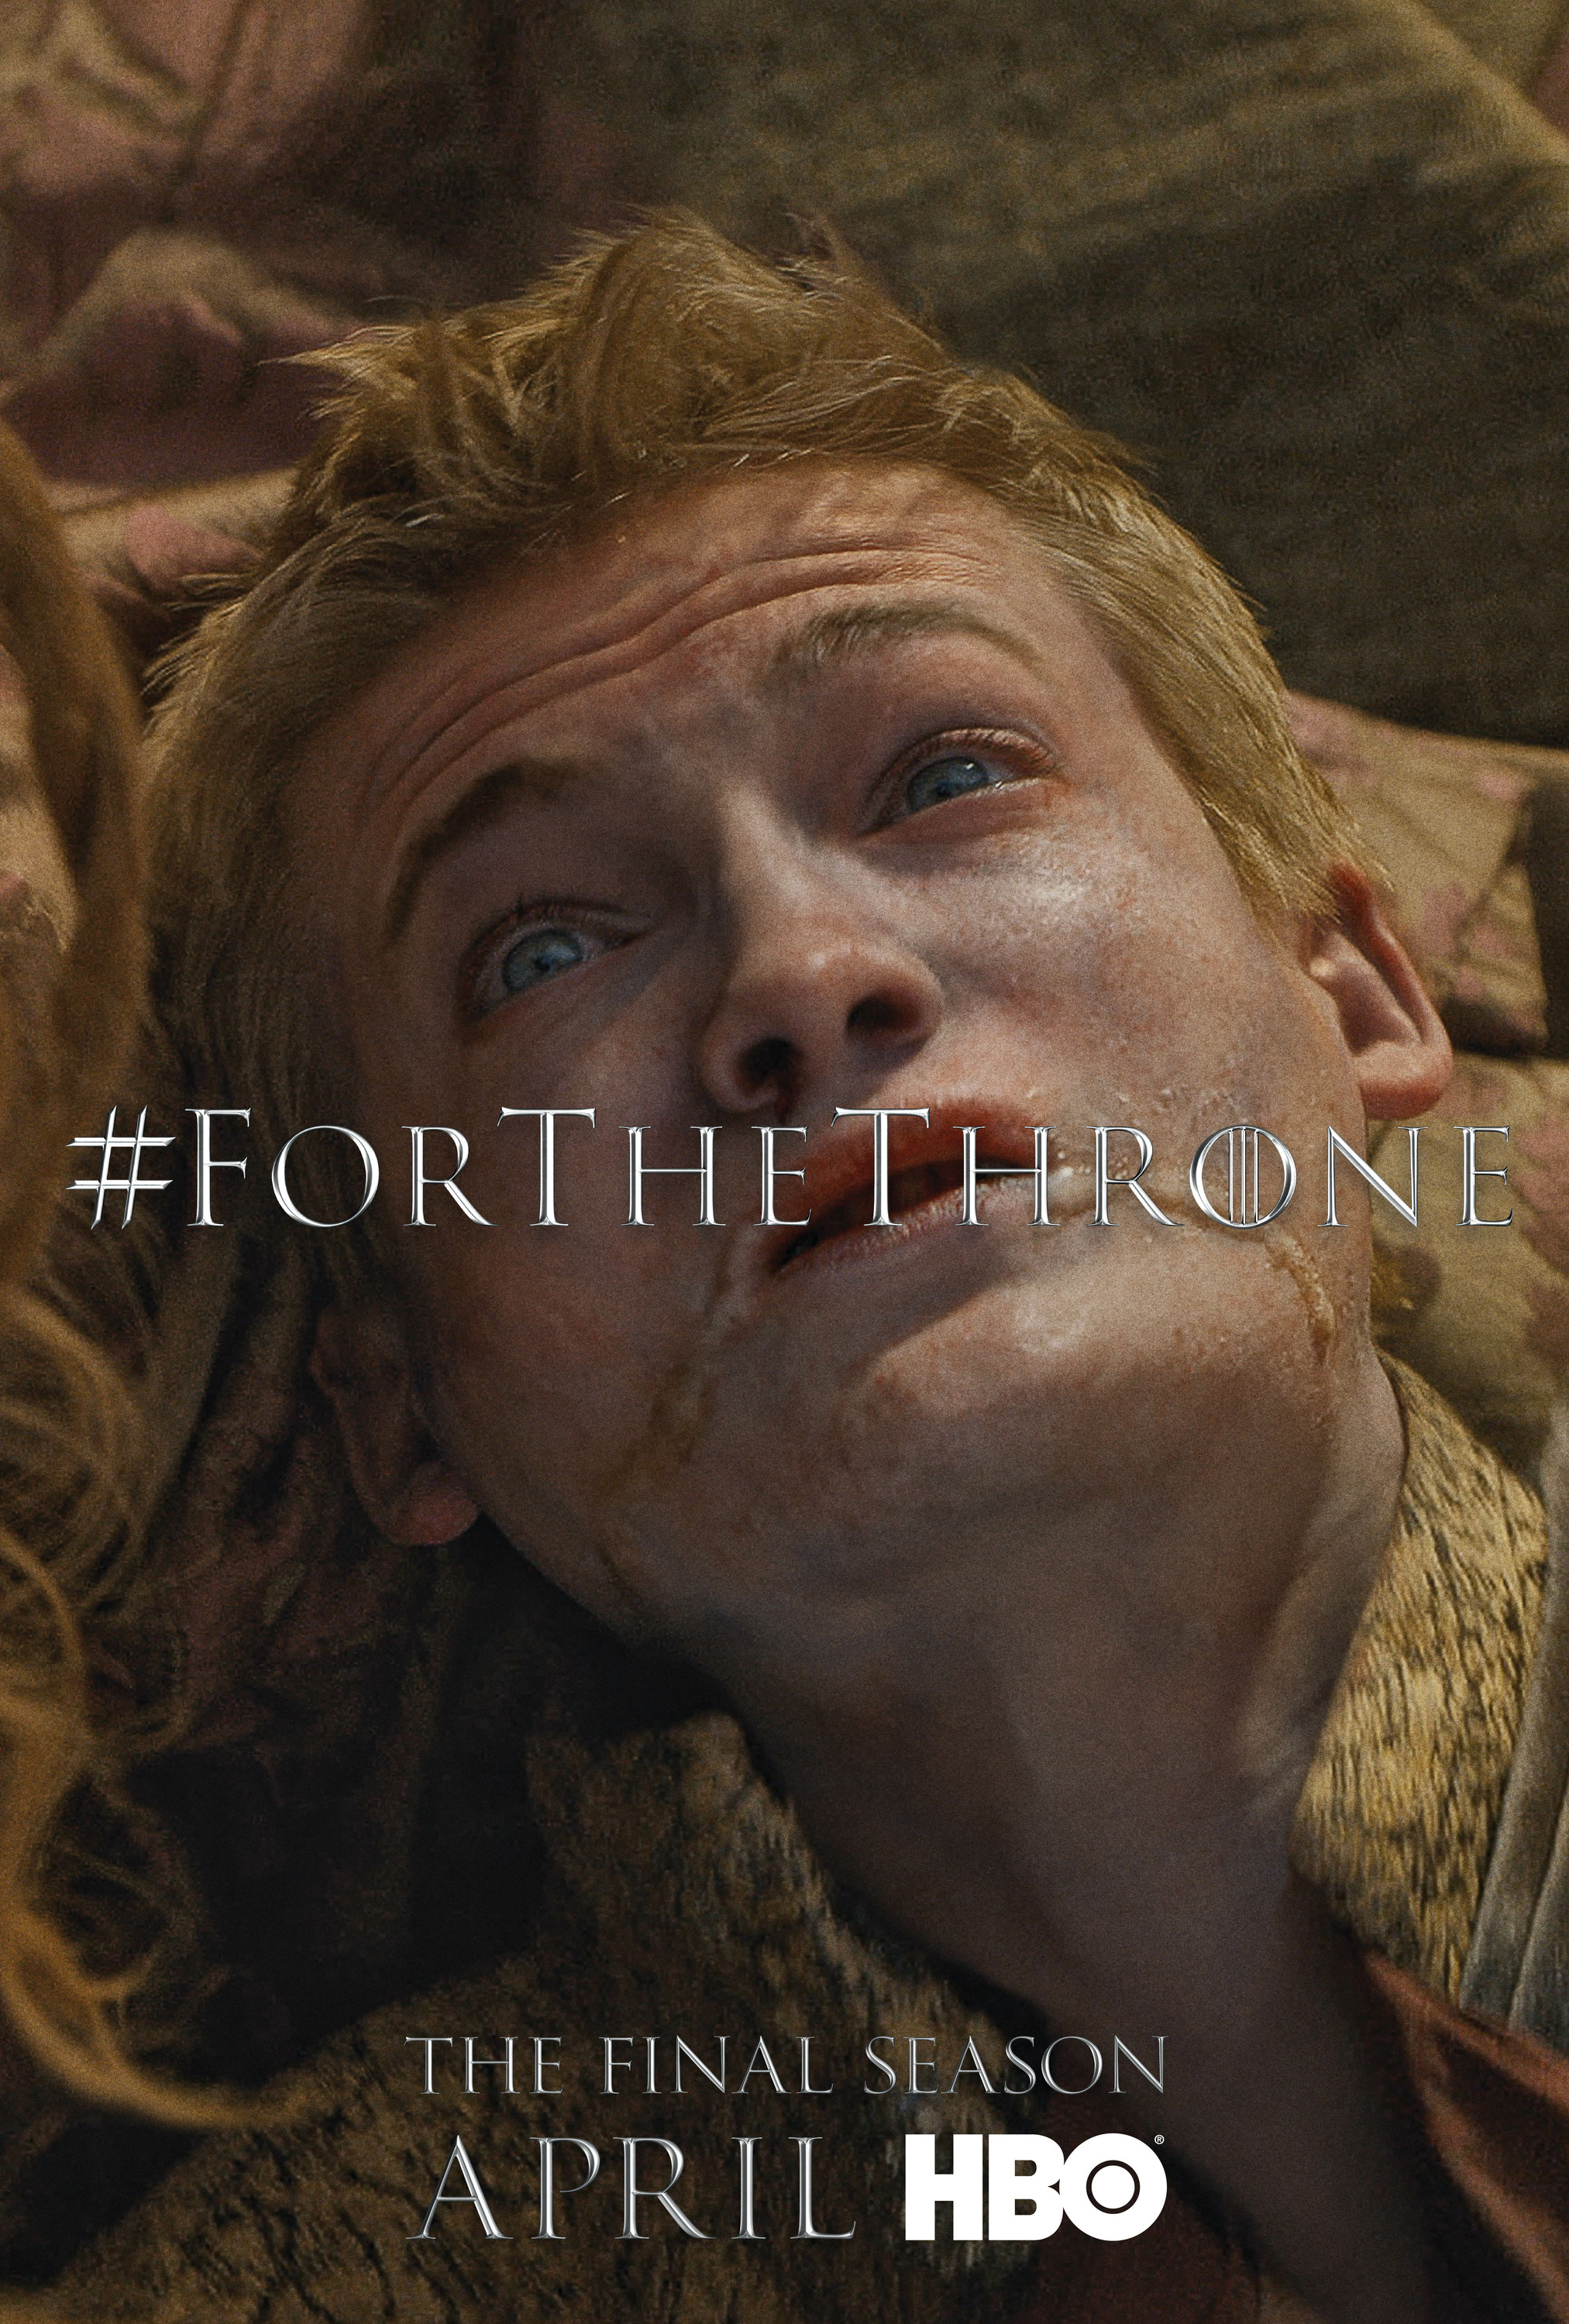 Game of Thrones - 'For the Throne' Poster - Joffrey